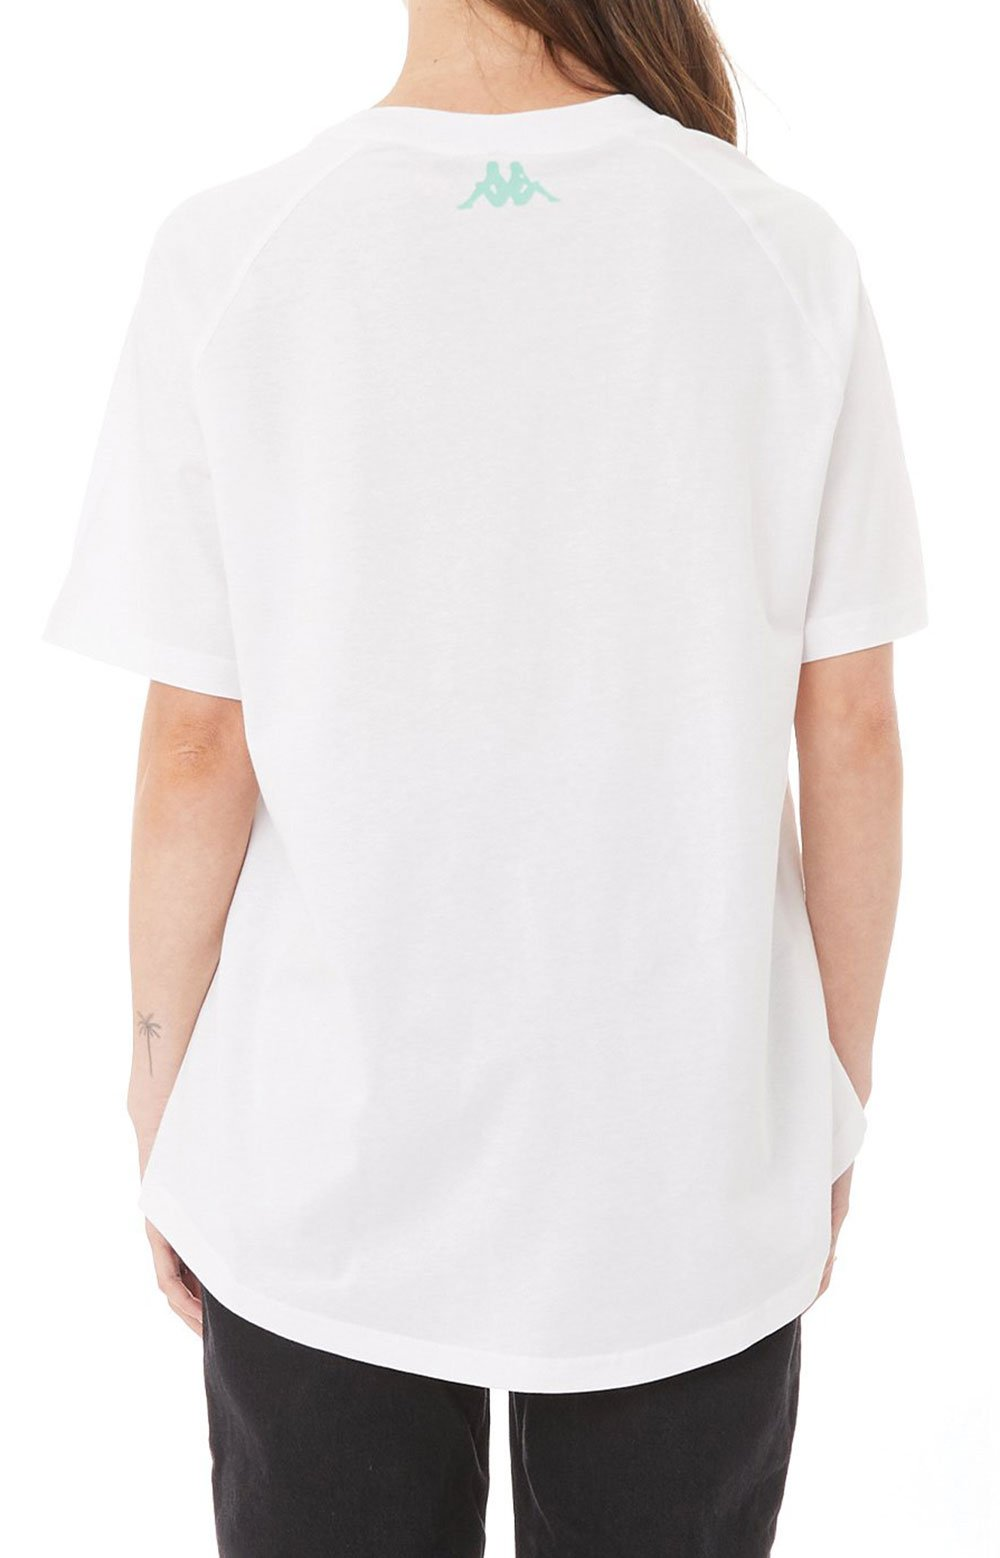 Authentic Pop Emasar Top - White/Green Spring  4